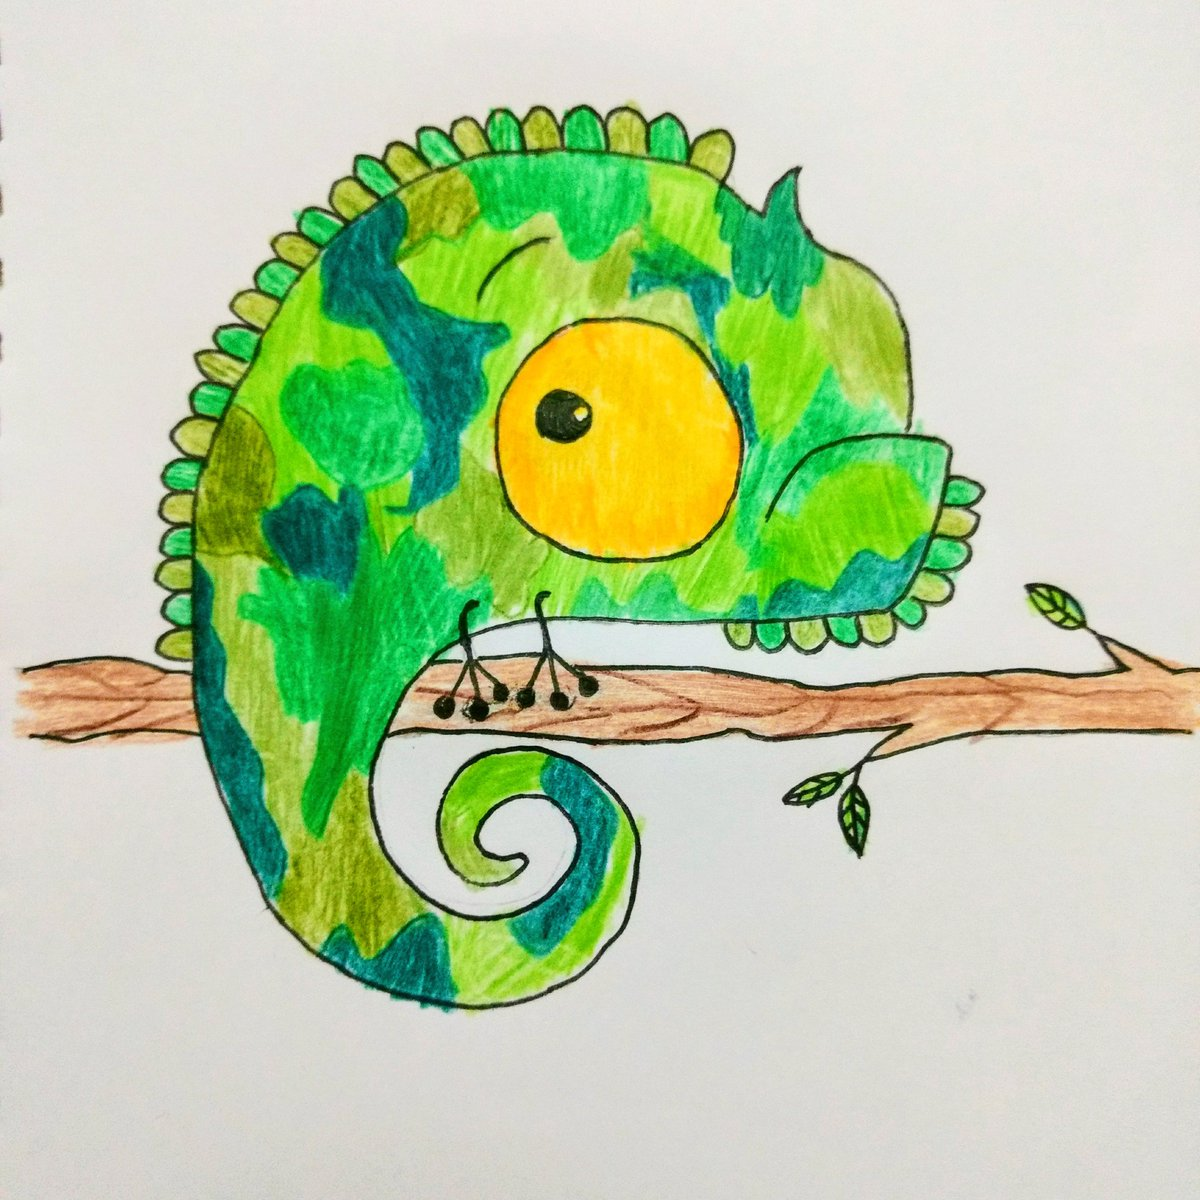 The next #DrawWithRob is here! Thanks for this adorable chameleon, @RobBiddulph ! This was by Maya 12 y.o.